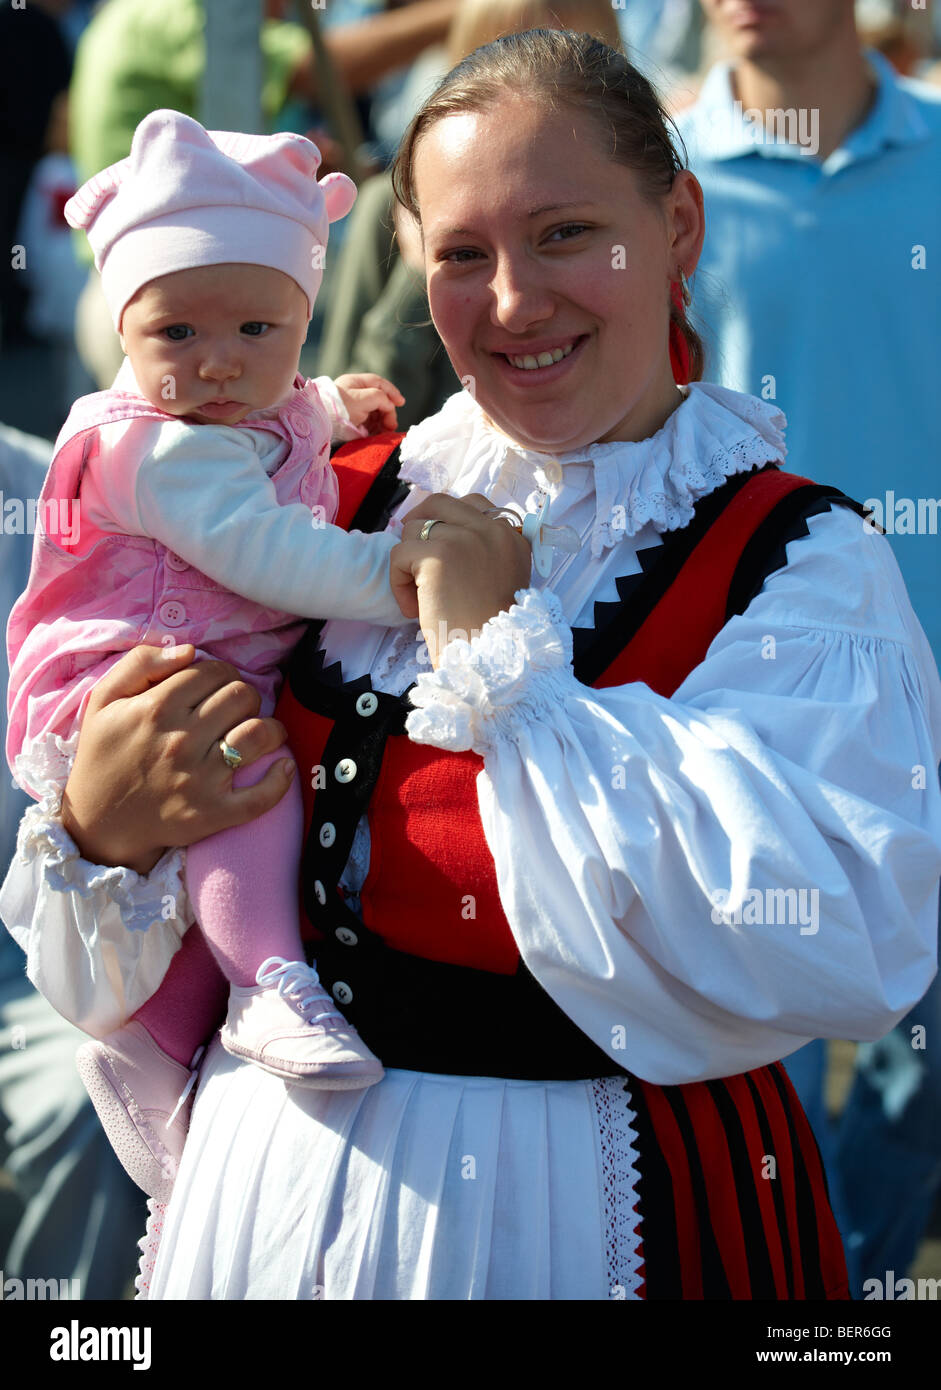 Mother and baby in traditional costume - Hungary - Stock Image